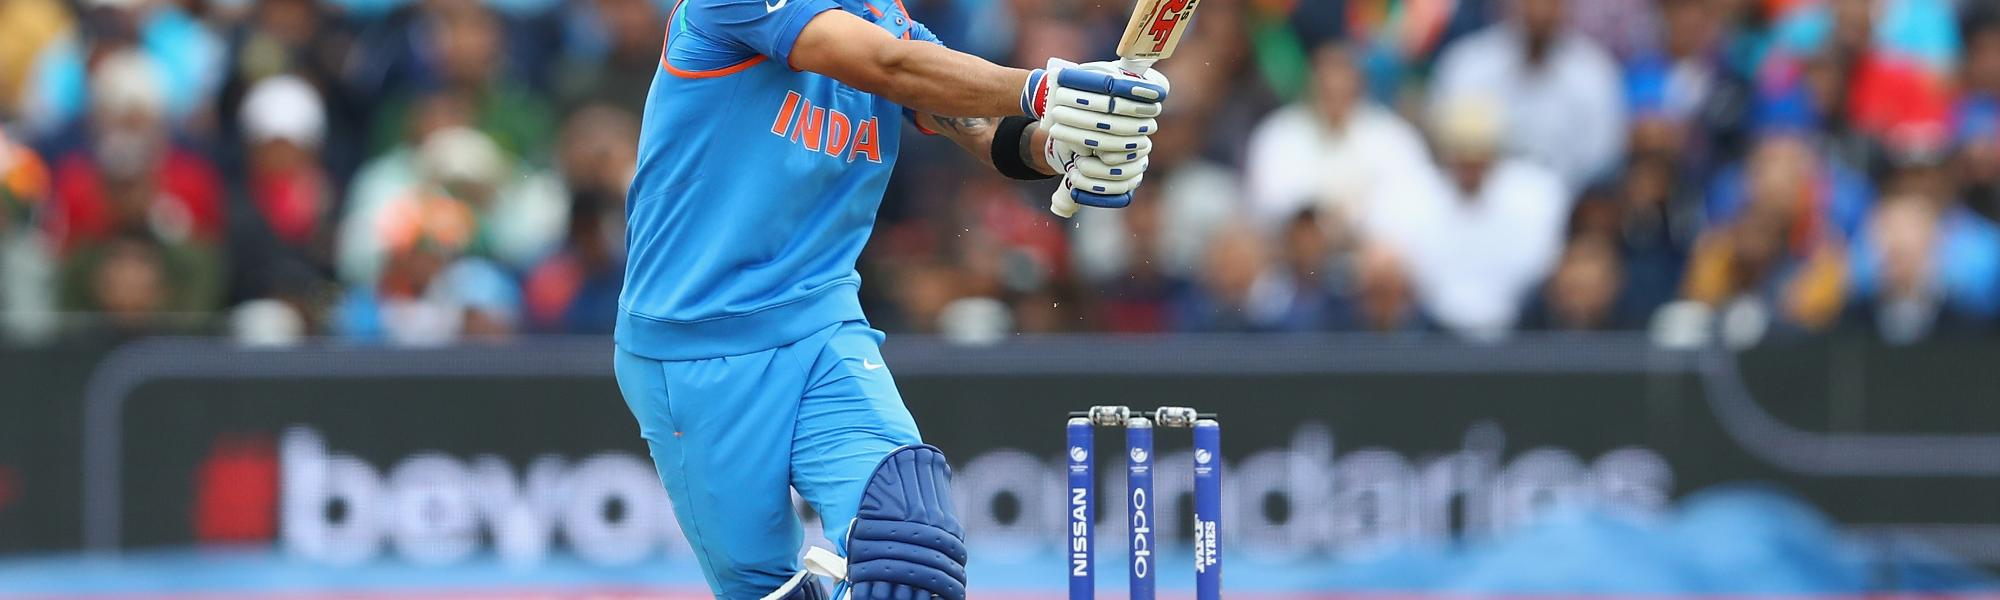 Virat Kohli added 81 off 68 deliveries to lift India t an imposing total of 319 for 3